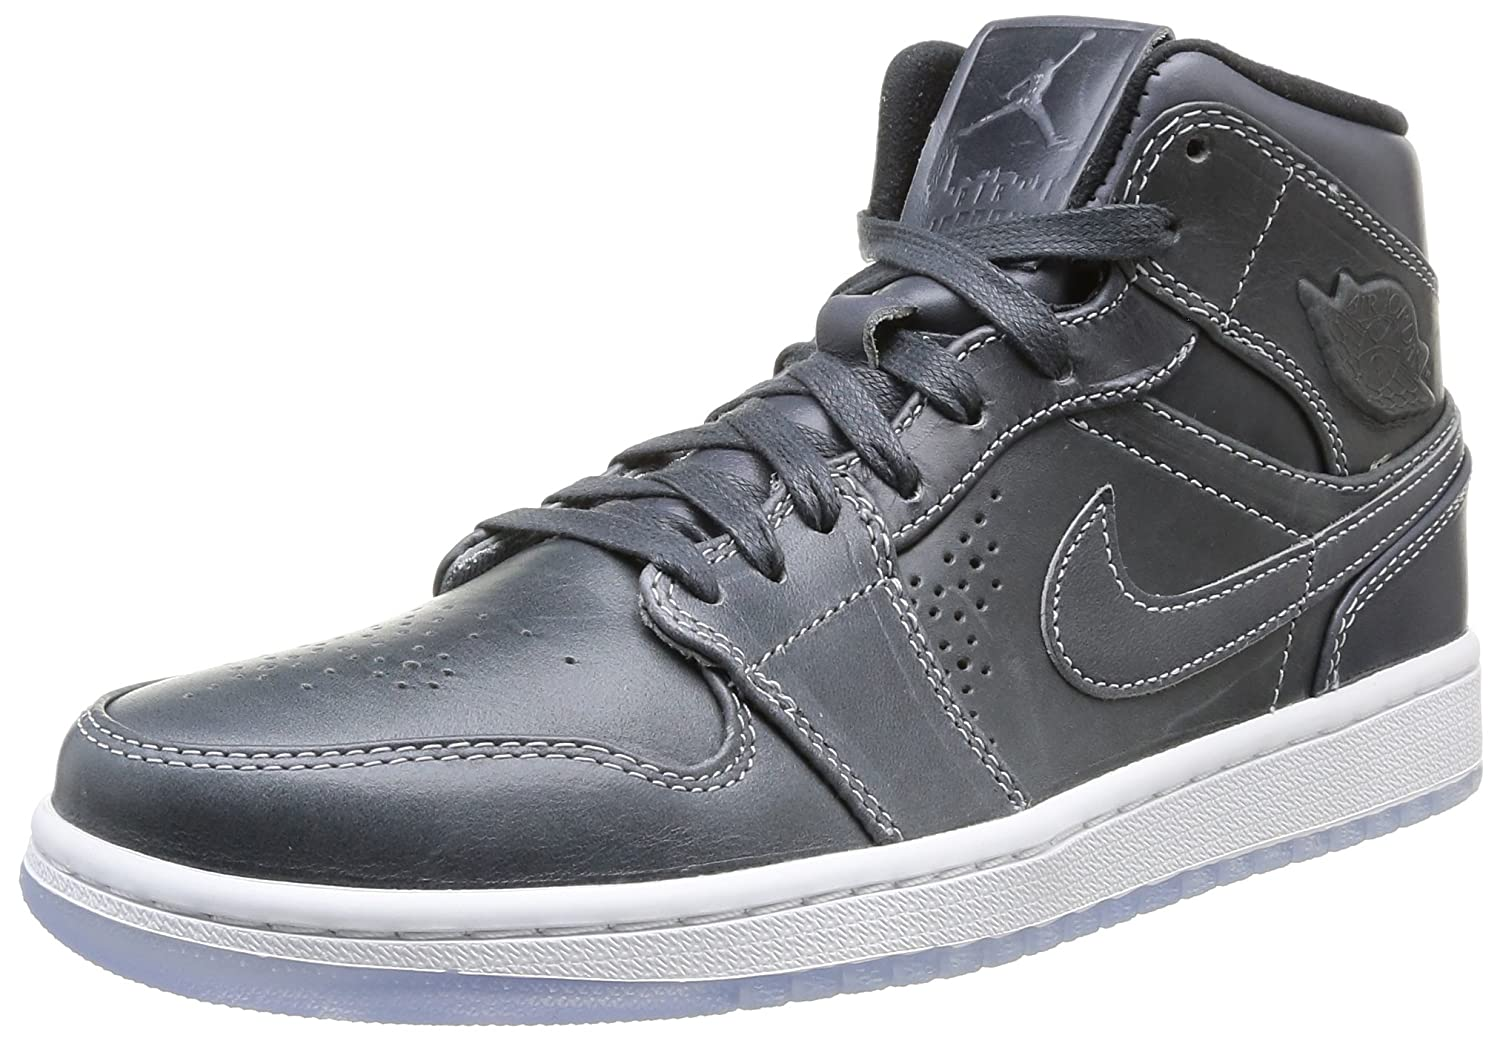 Nike Air Jordan 1 Mid 629151-004 Mens shoes B00MB4NHPS 8 D(M) US|Wolf Grey/Black/White